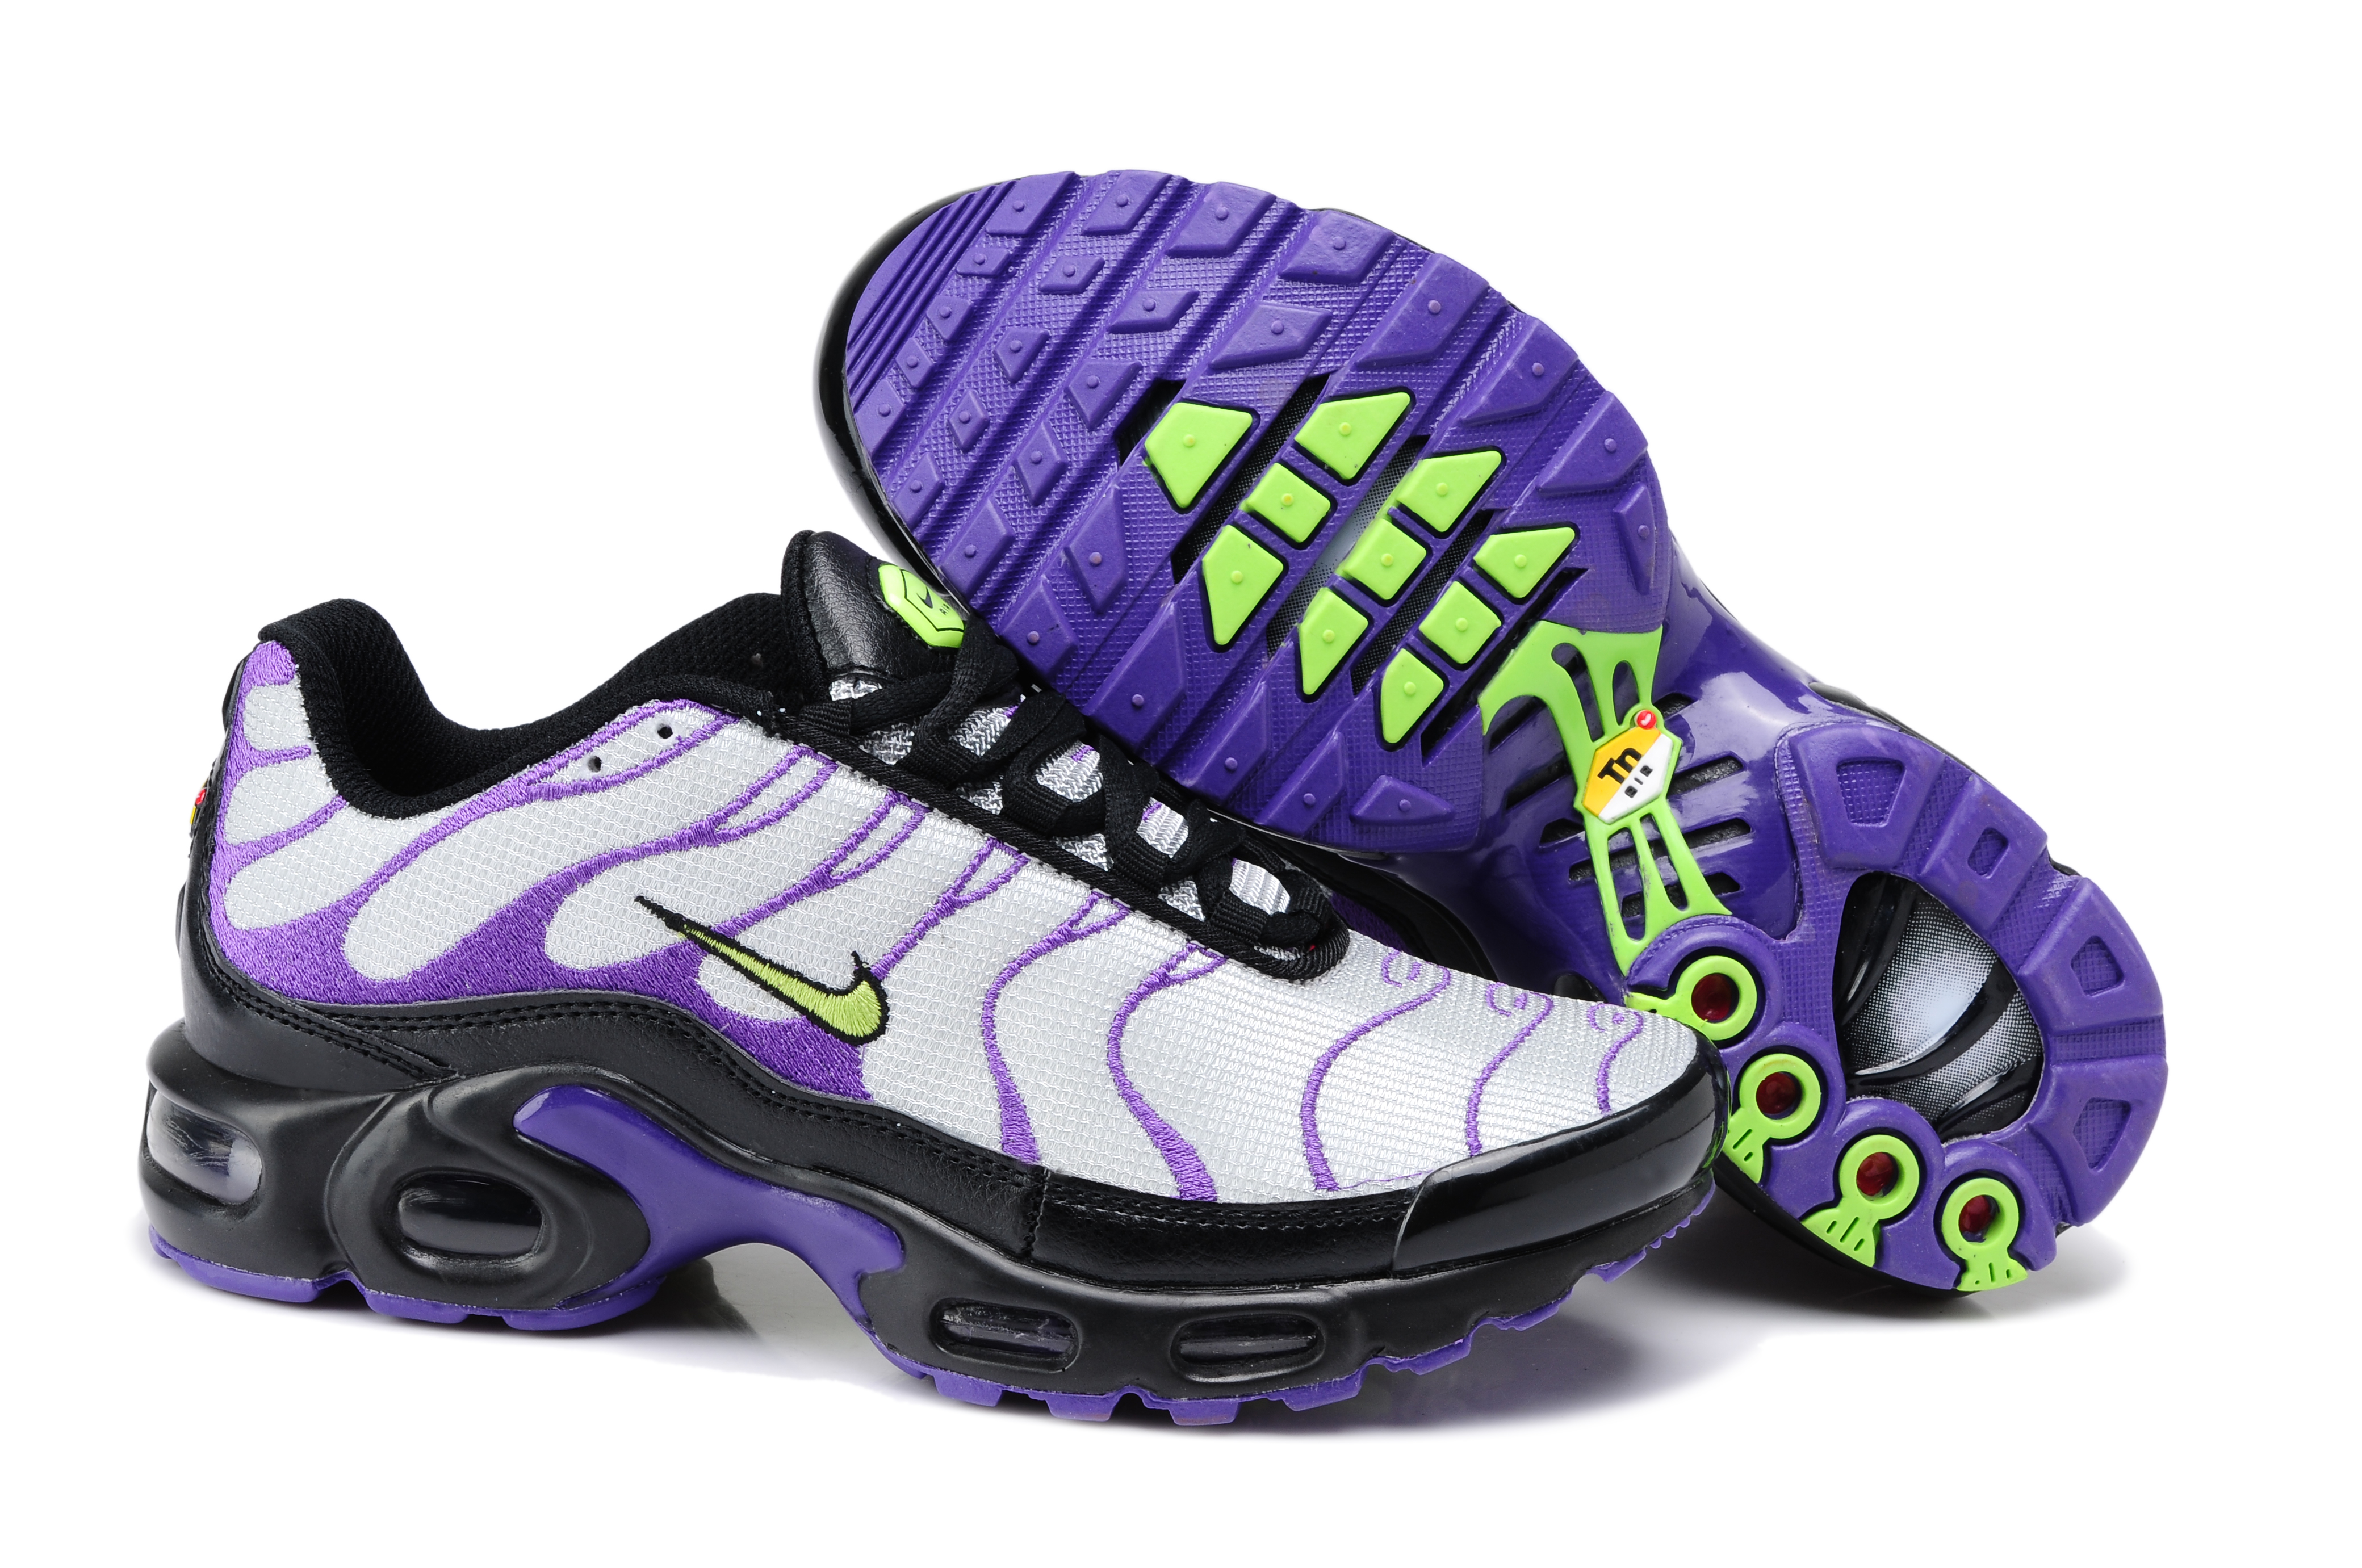 hot sales good out x new specials nike tn ancien model,vente chaussures baskets nike tn ancien model ...